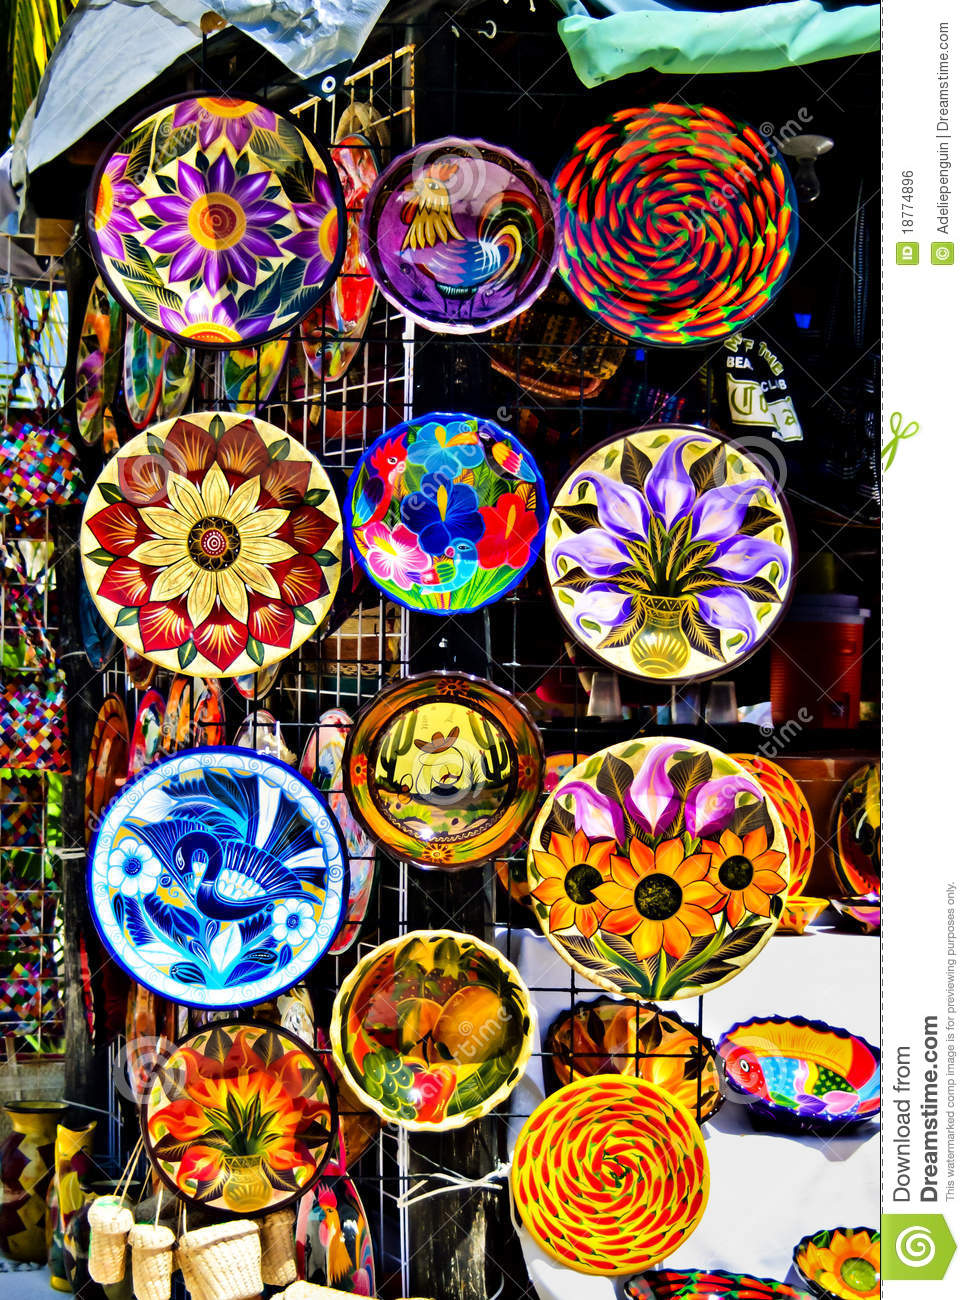 Brightly painted colorful ceramic plates hang on a stall in a crafts ...